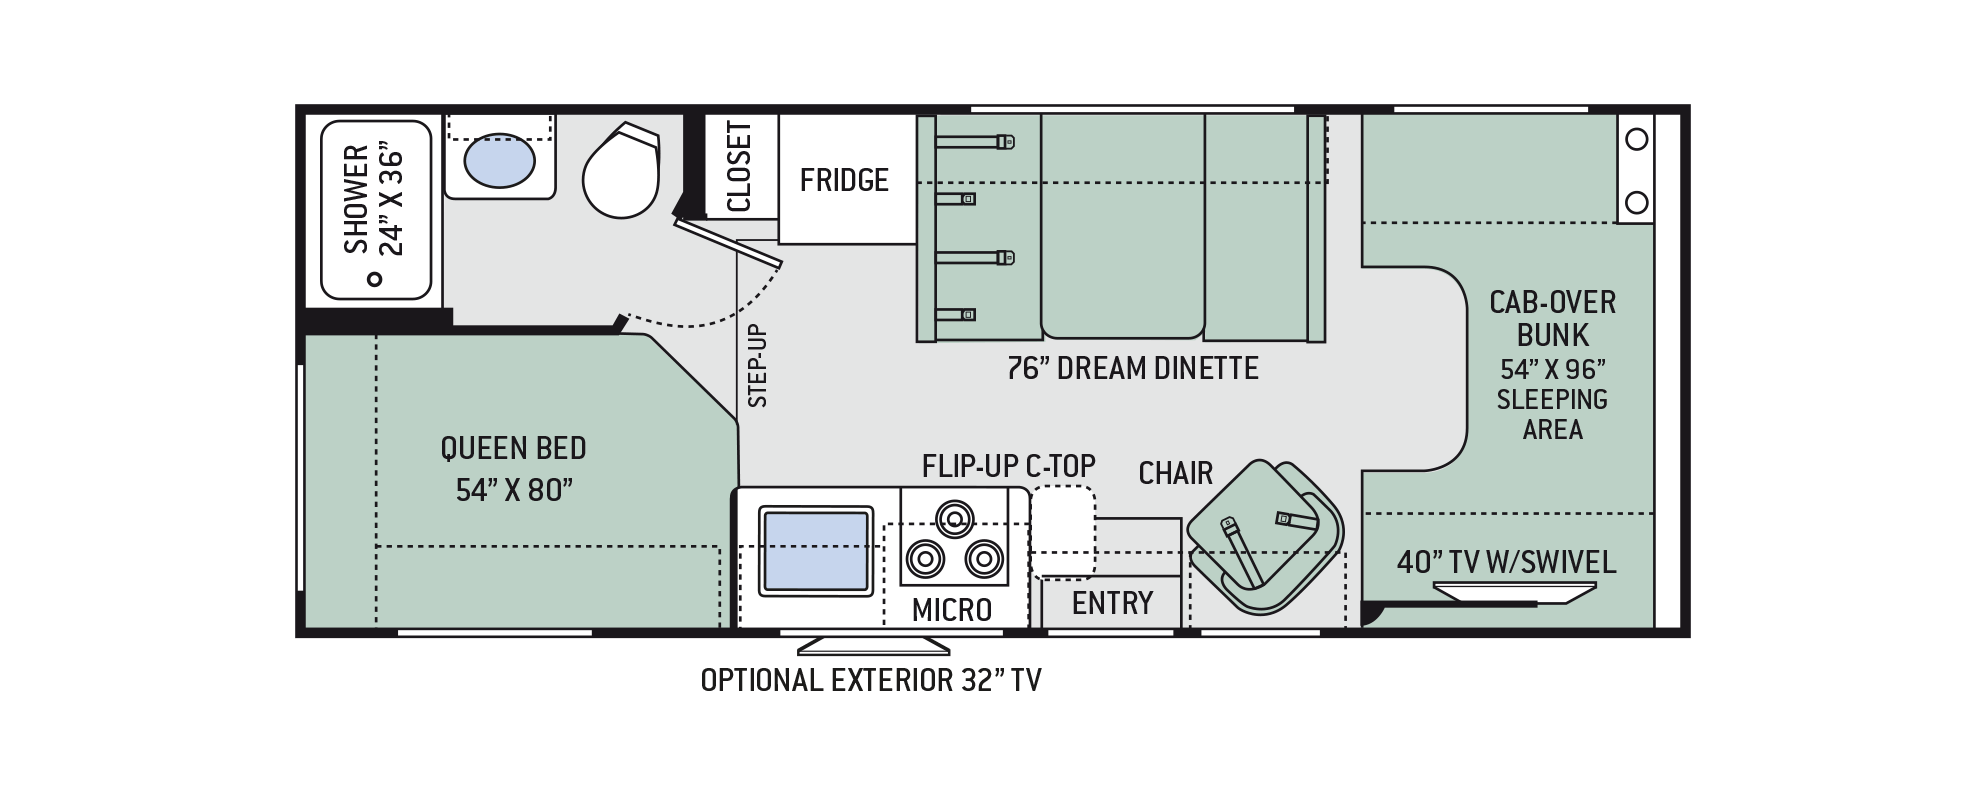 Floor Plans Chateau 23u With Images Rv Floor Plans Floor Plans